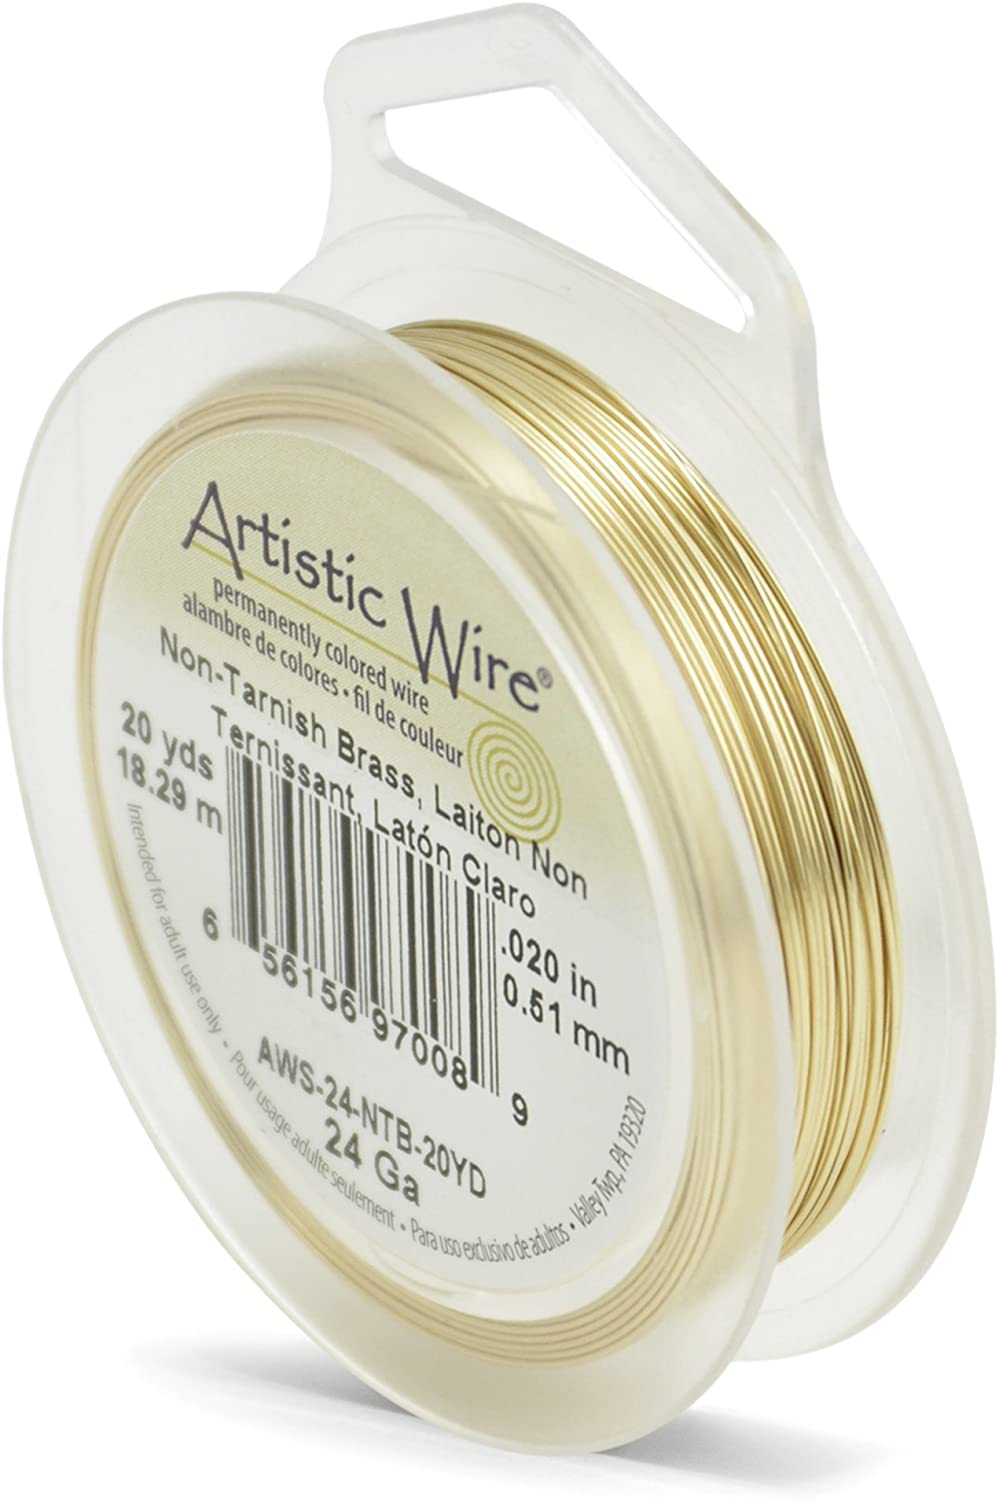 Artistic Copper Wire Non Tarnish Brass 24GA 20 Yards AW24NTB